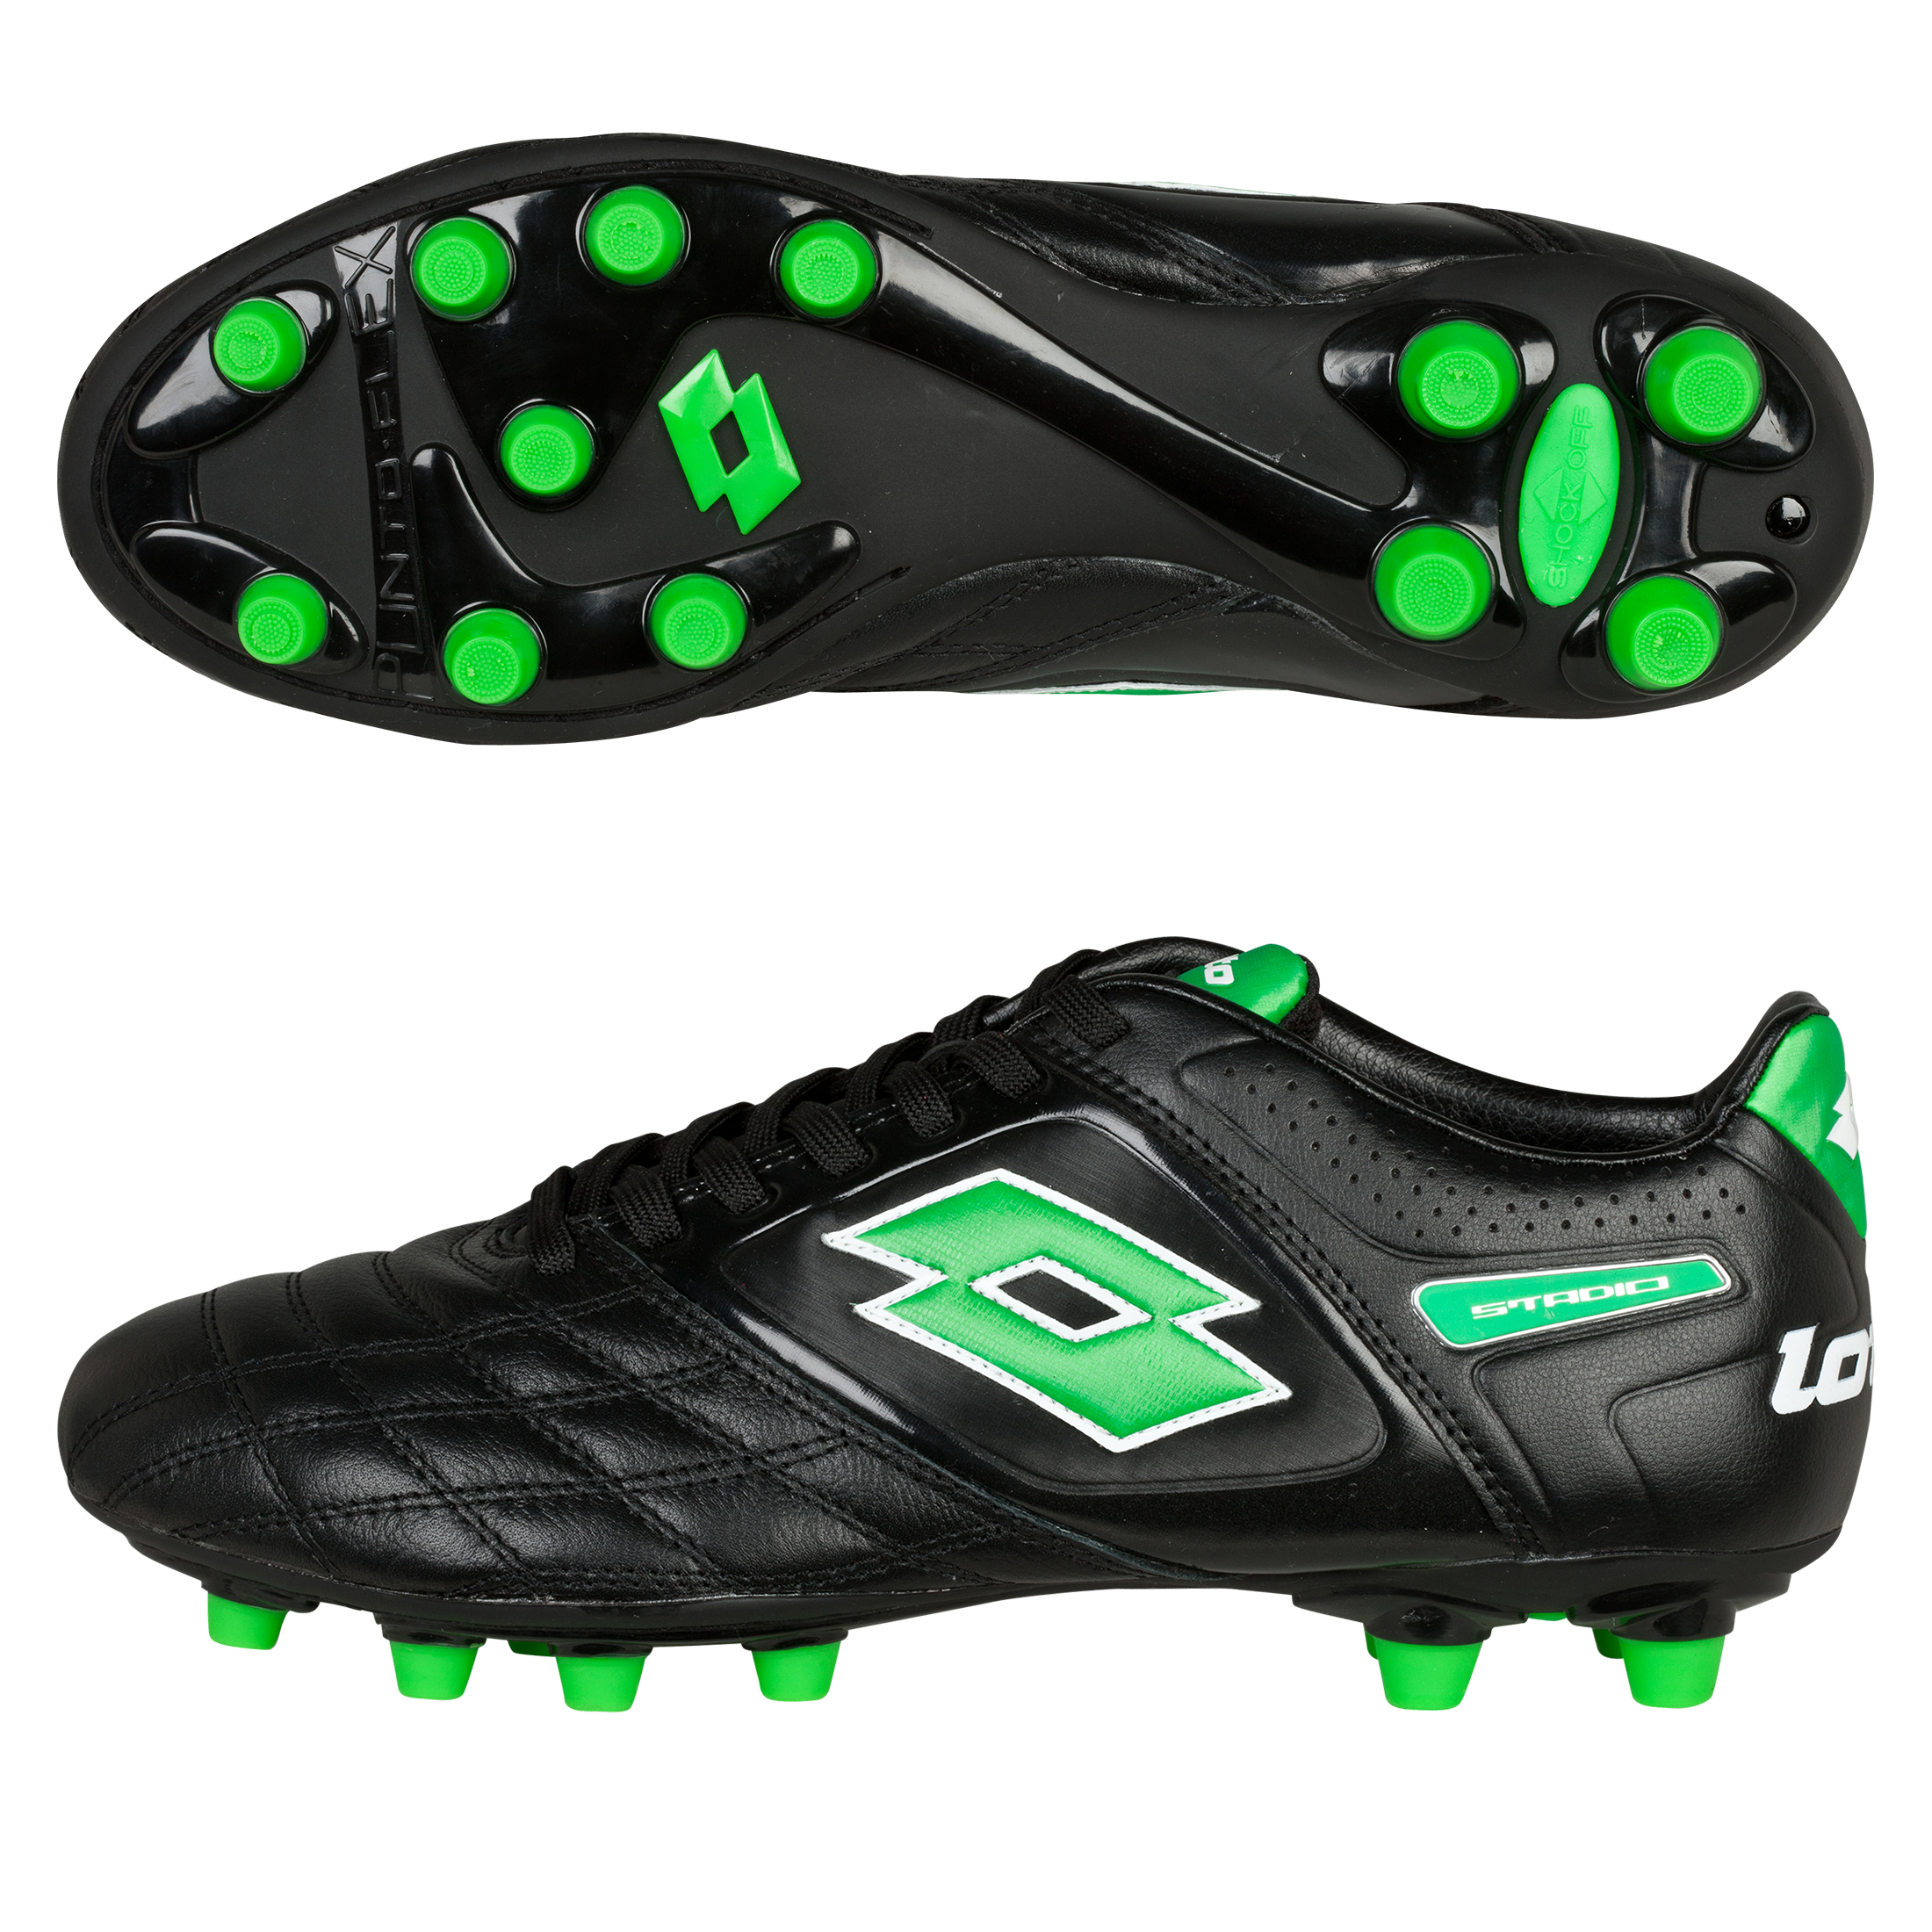 Lotto Stadio Potenza II 300 Firm Ground Football Boots - Black/MN Green